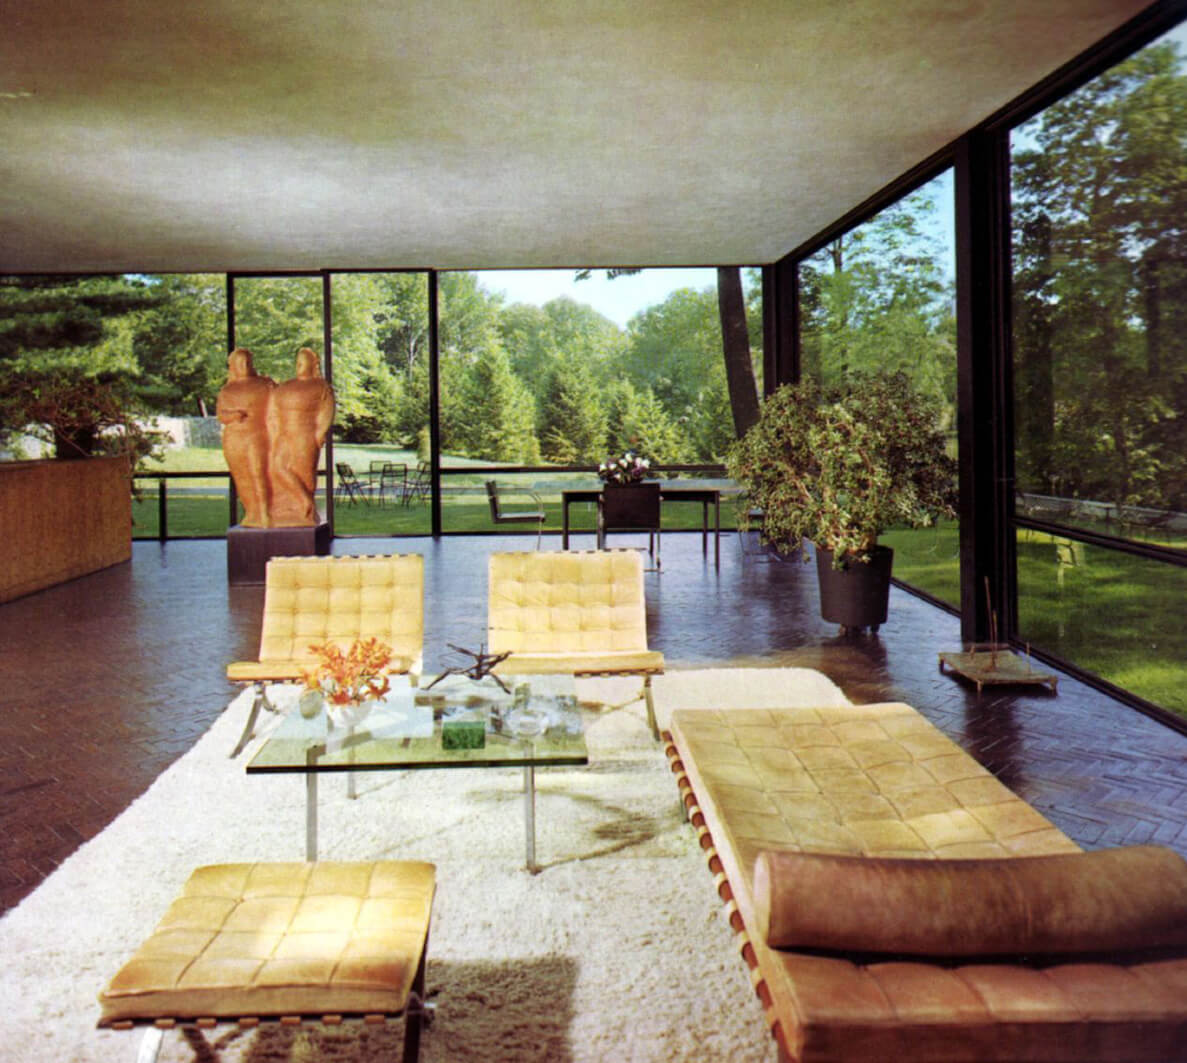 A glimpse of the interiors of the Glass House | Philip Johnson | STIRworld